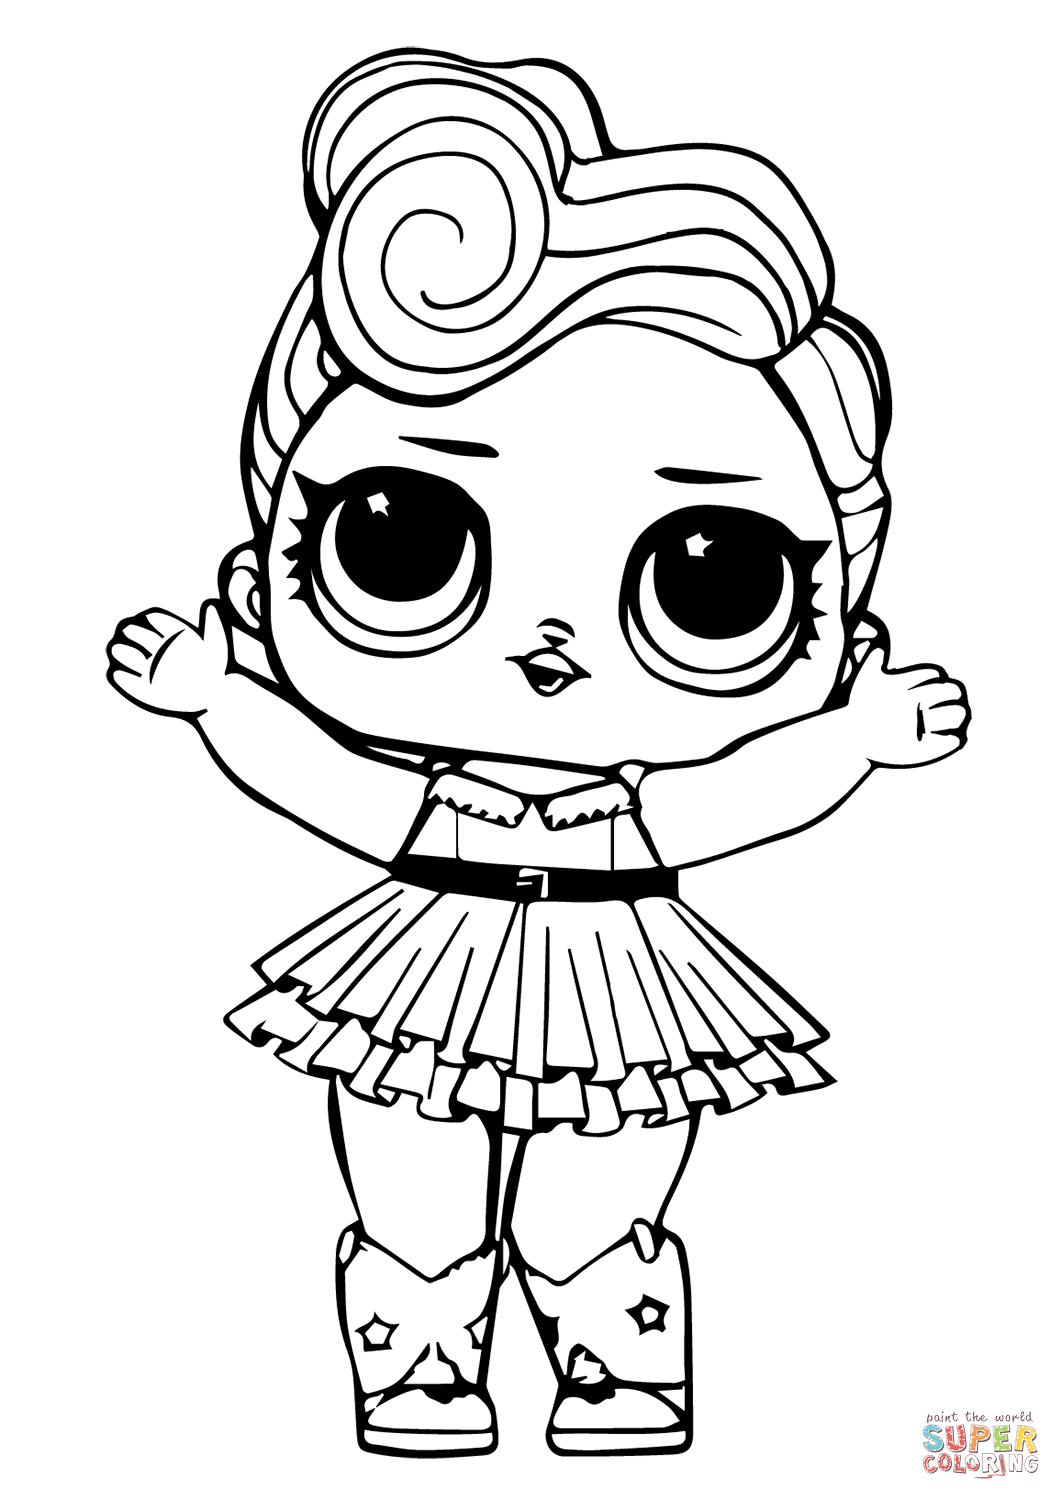 Lol Doll Luxe Coloring Page   Free Printable Coloring Pages   Lol - Free Printable Coloring Pages For Kids